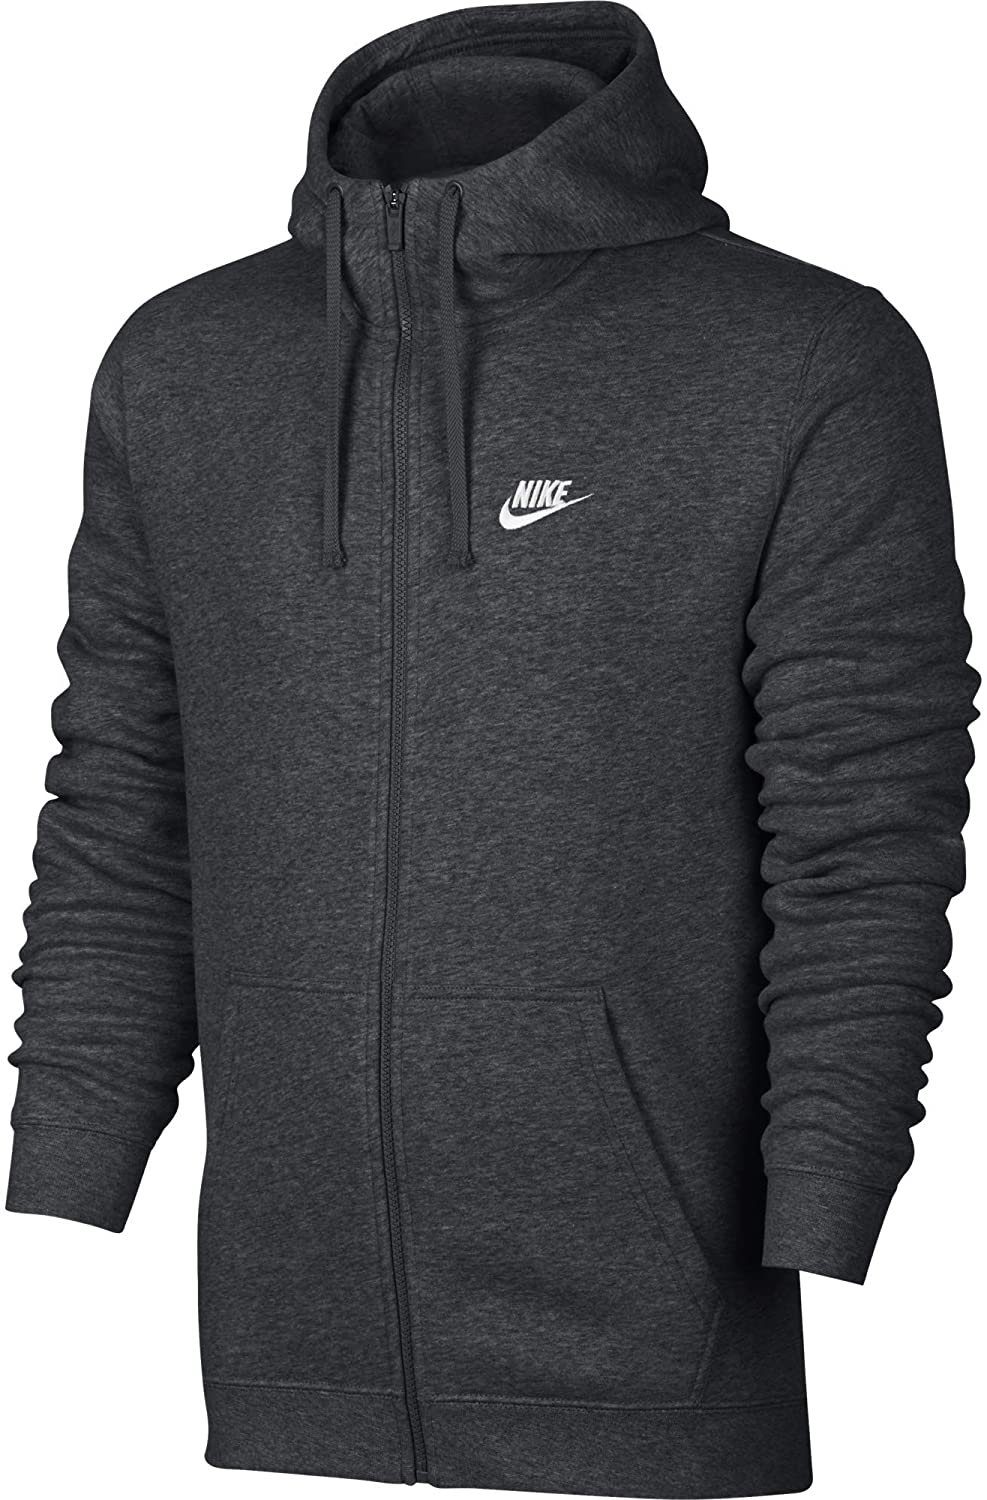 Nike grey charcoal sportwear club full zip up hoodie, best hoodie brands